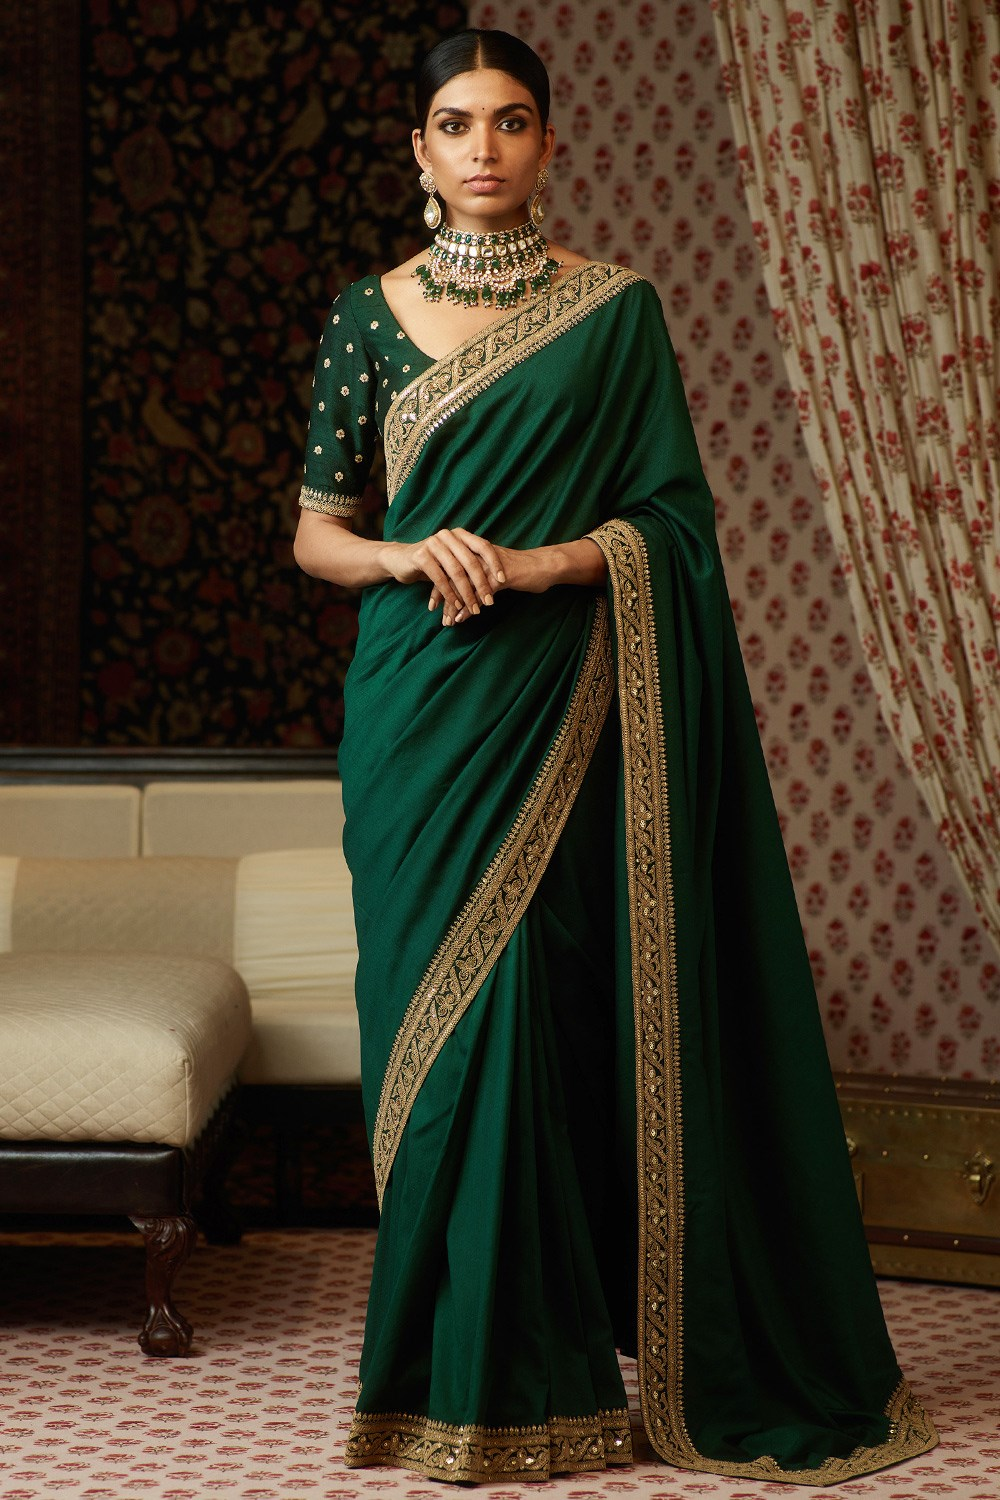 822ef1393137e8 Most Beautiful Sabyasachi Saree Cost and Photos - Frugal2Fab